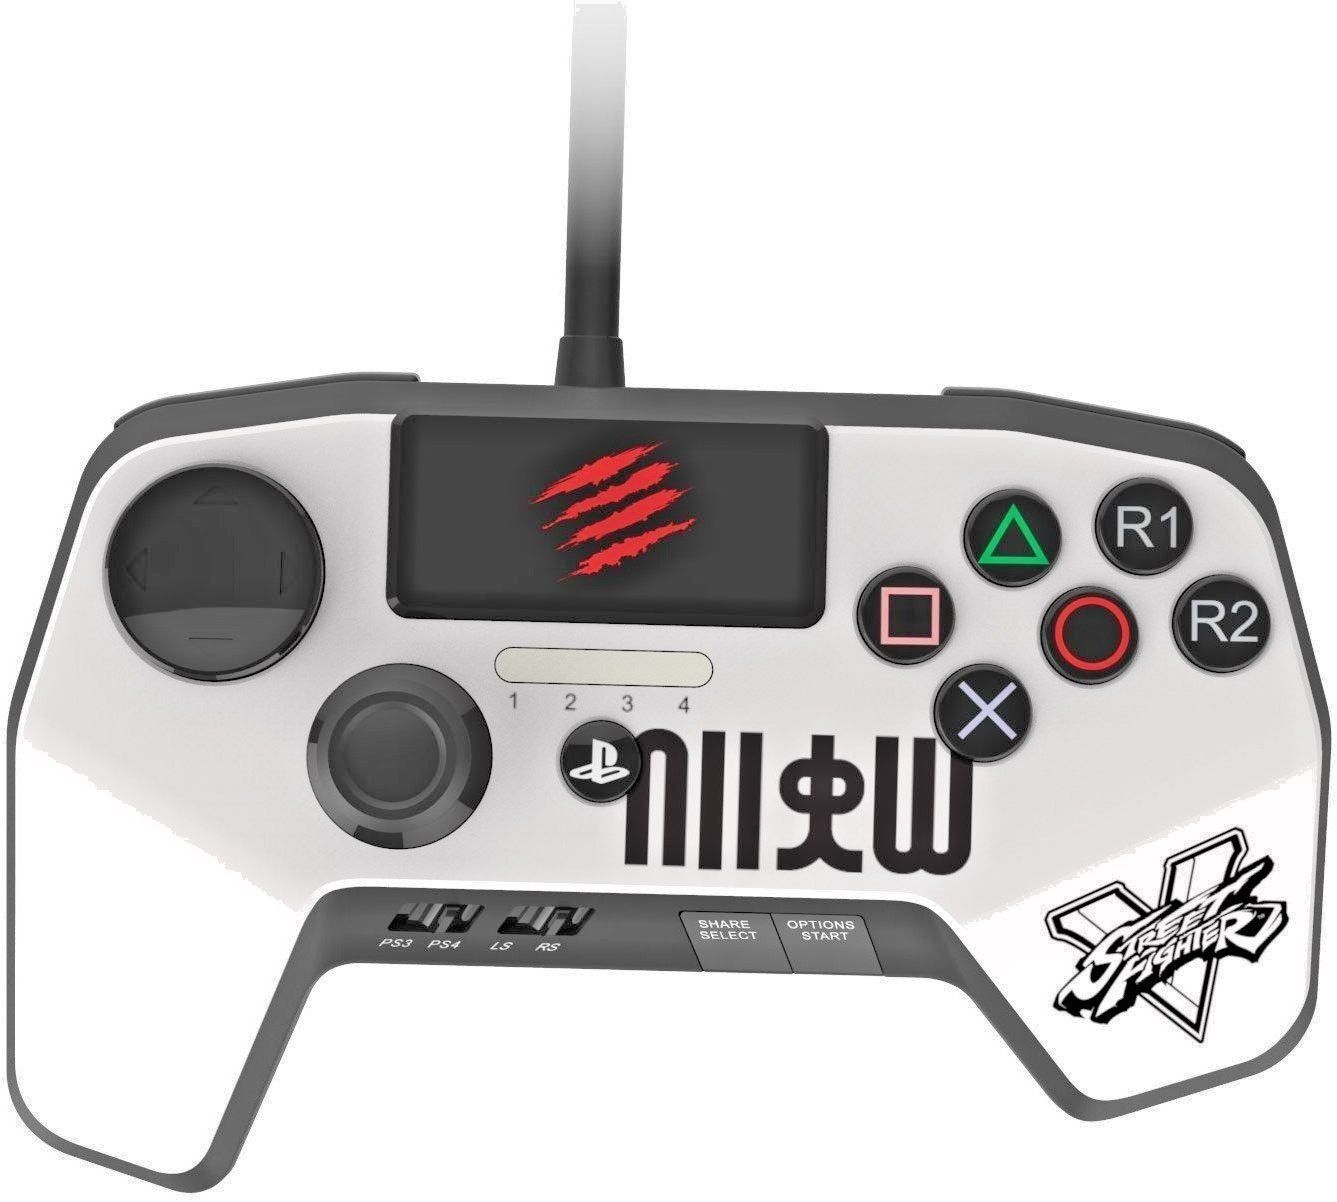 NEW IMPROVED D-PAD MAD CATZ STREET FIGHTER V FIGHTPAD PRO FOR PS4 & PS3 - WHITE